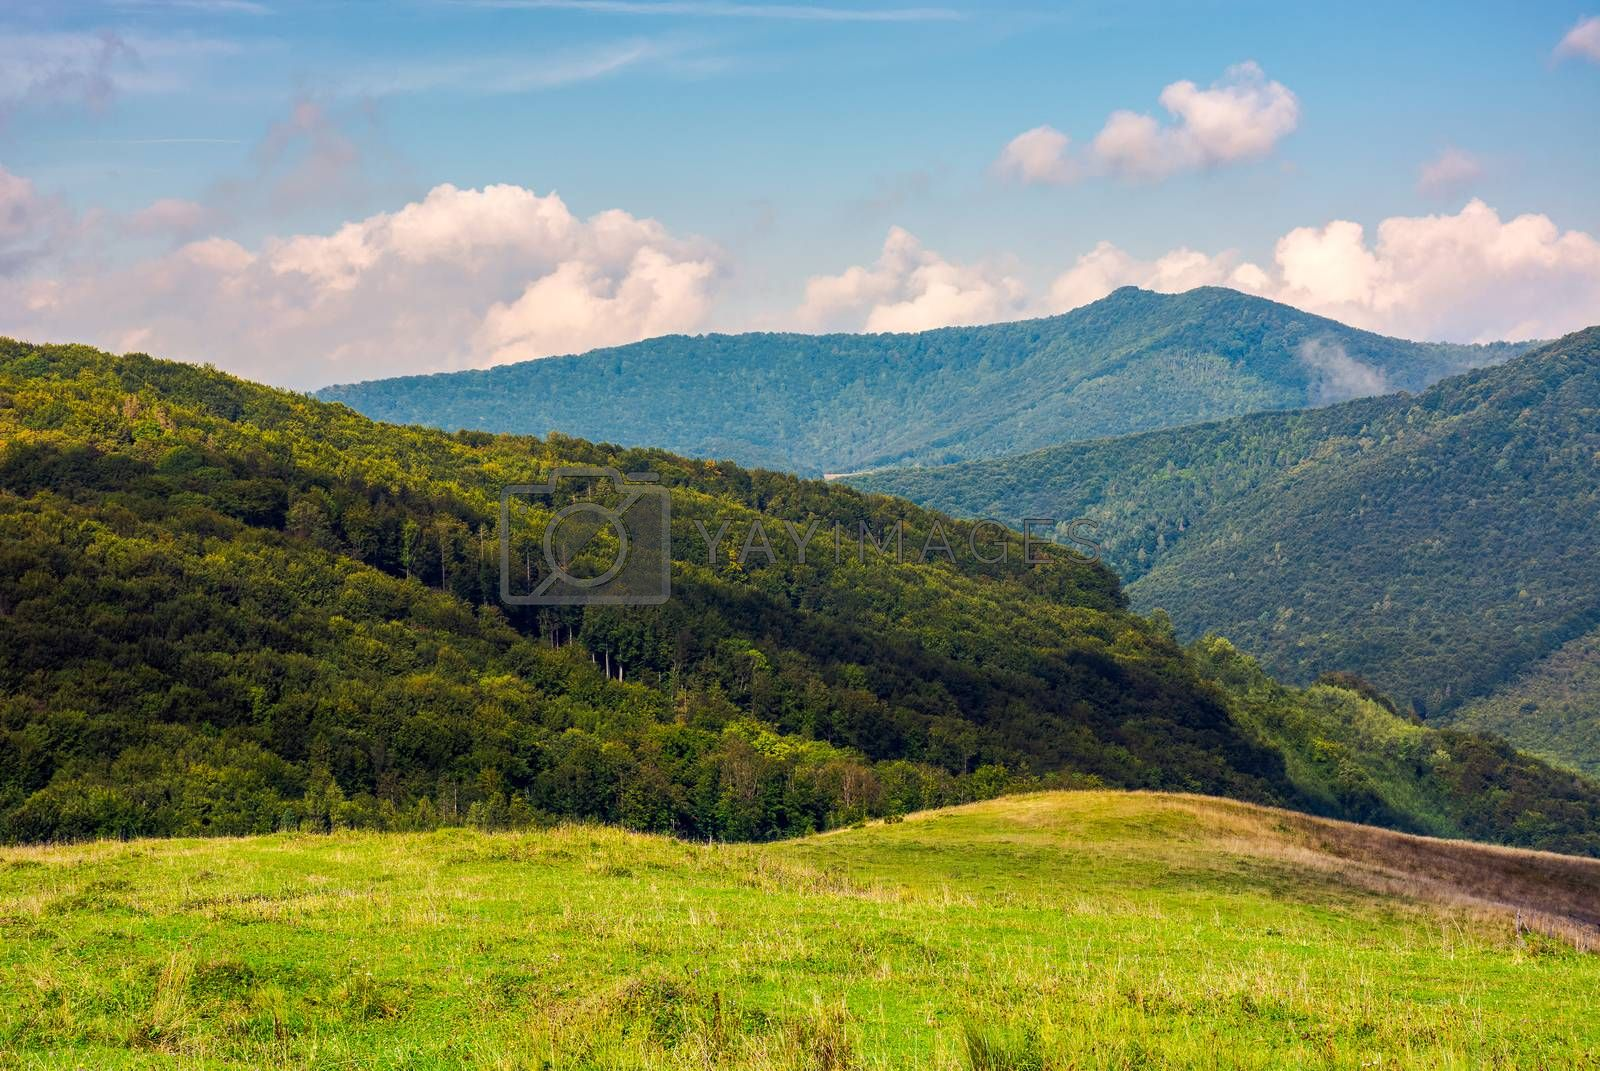 meadow on a mountain slope by Pellinni